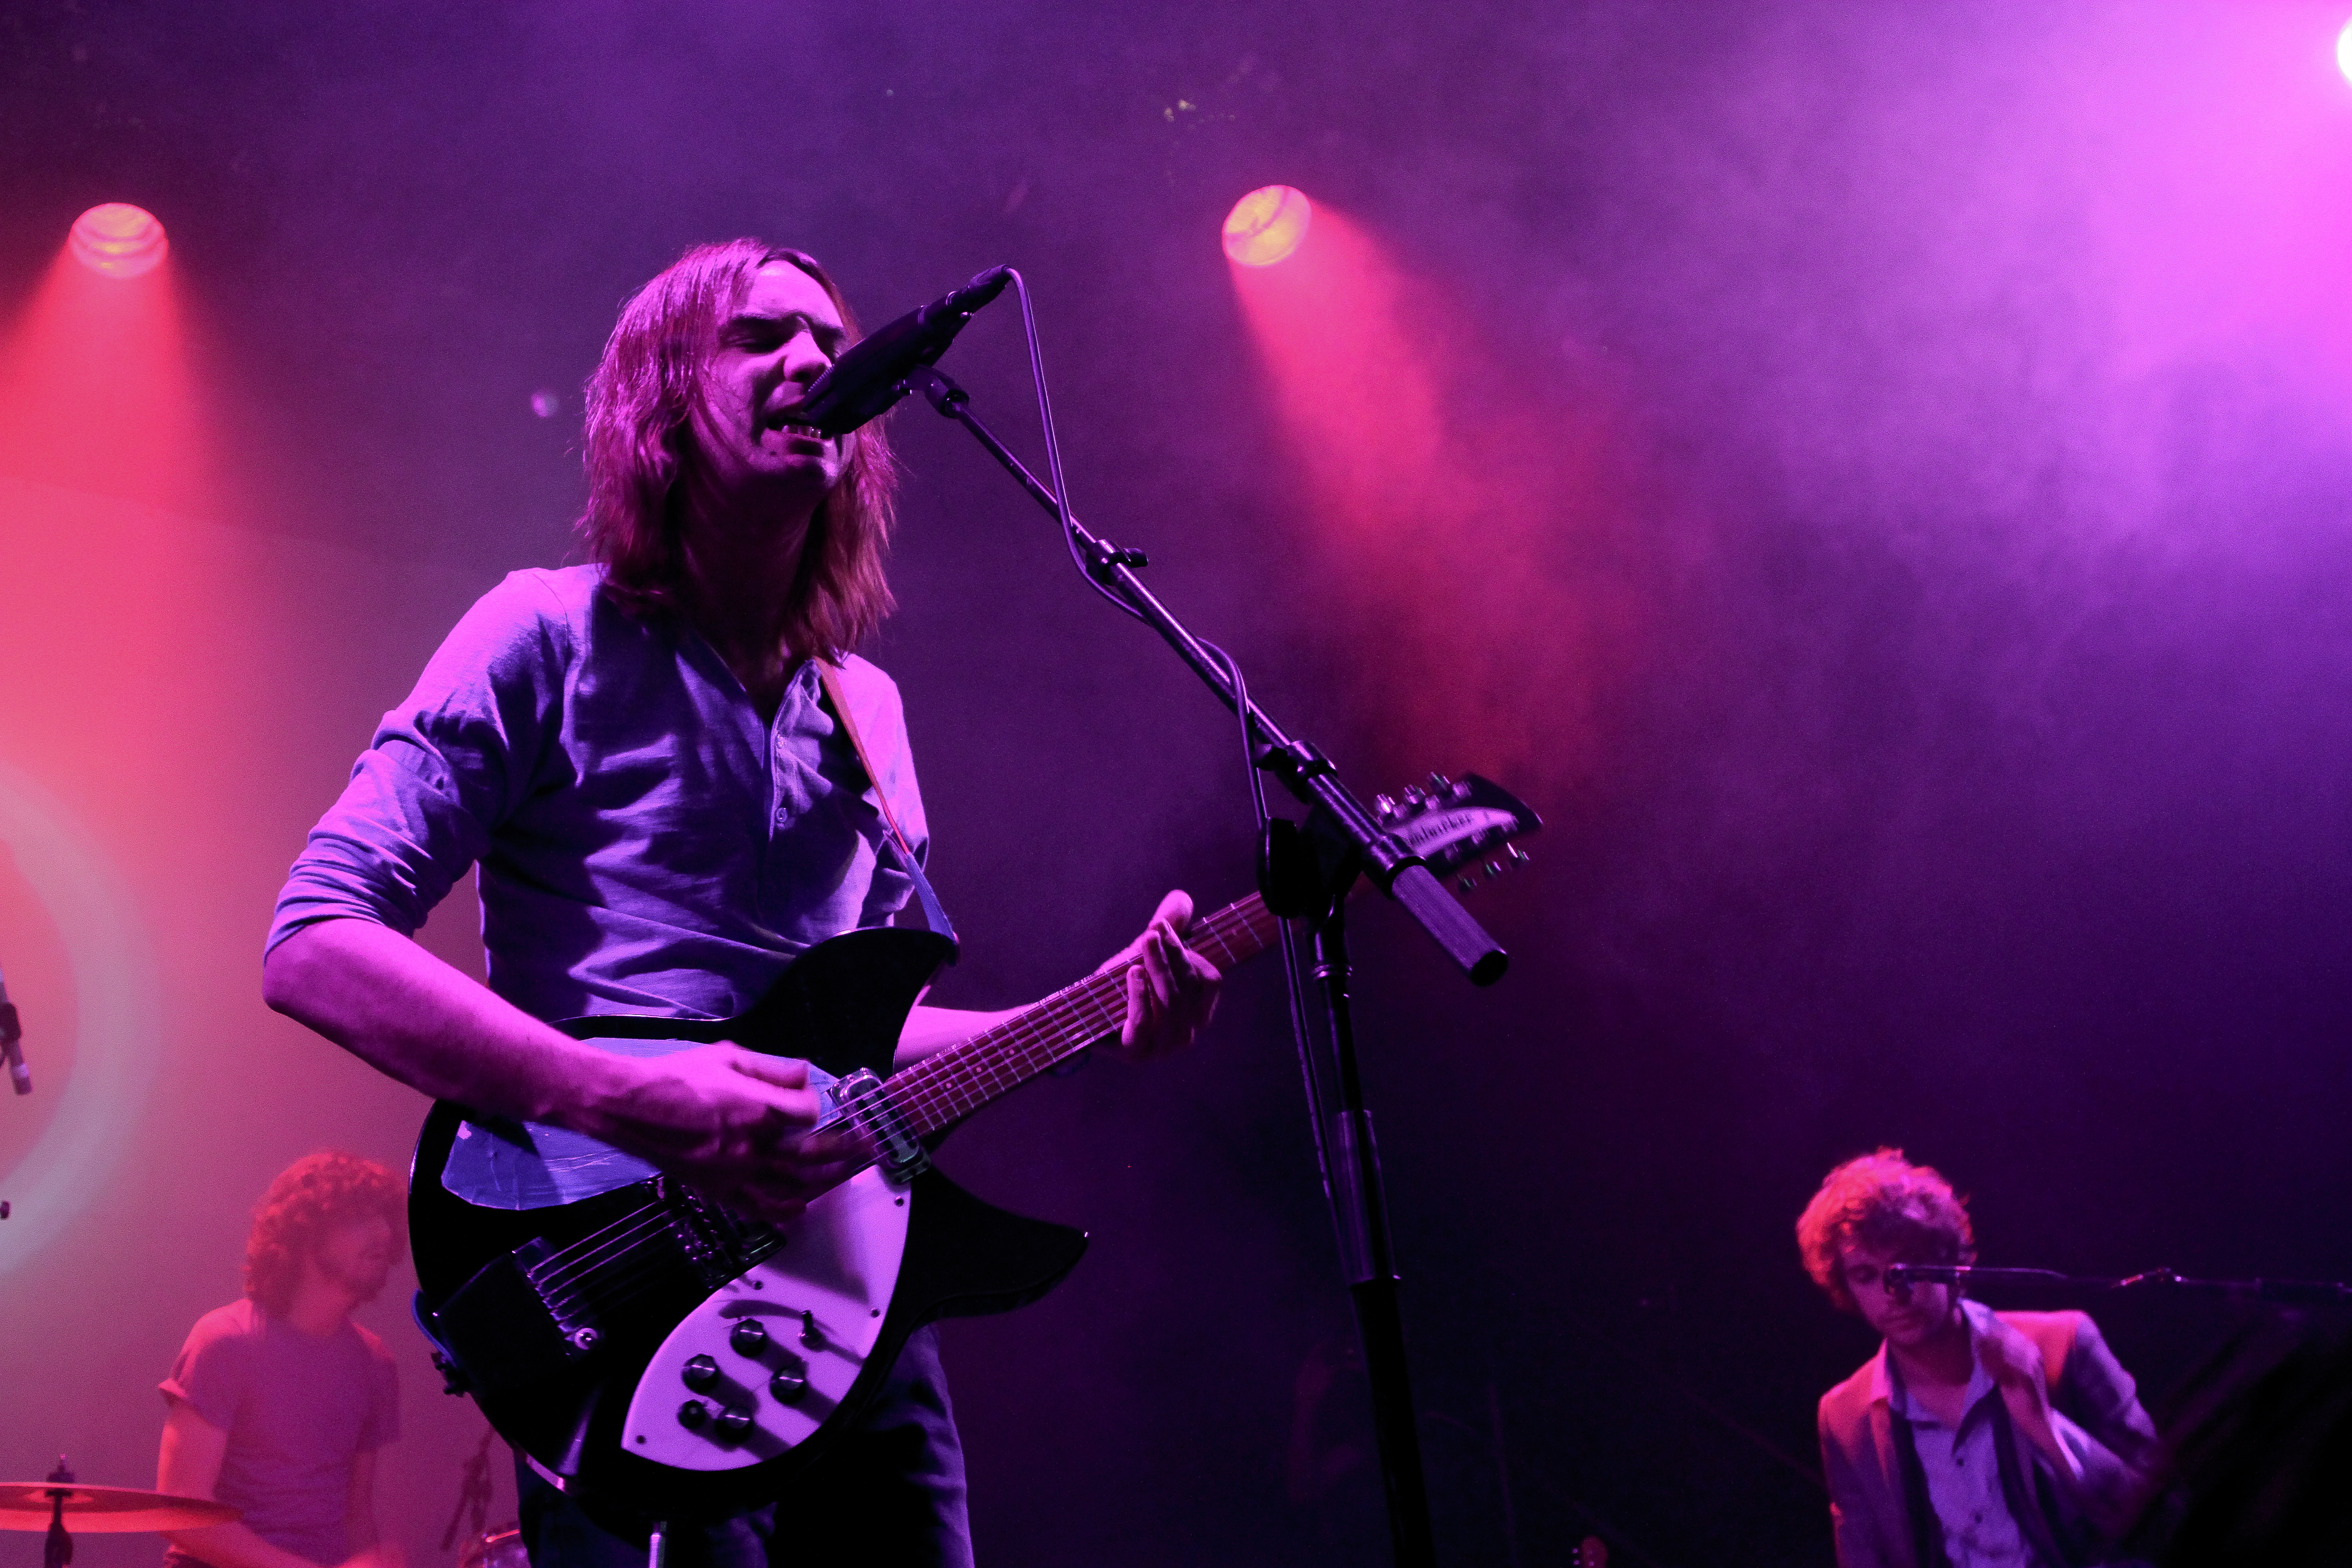 Tame Impala discography - Wikipedia